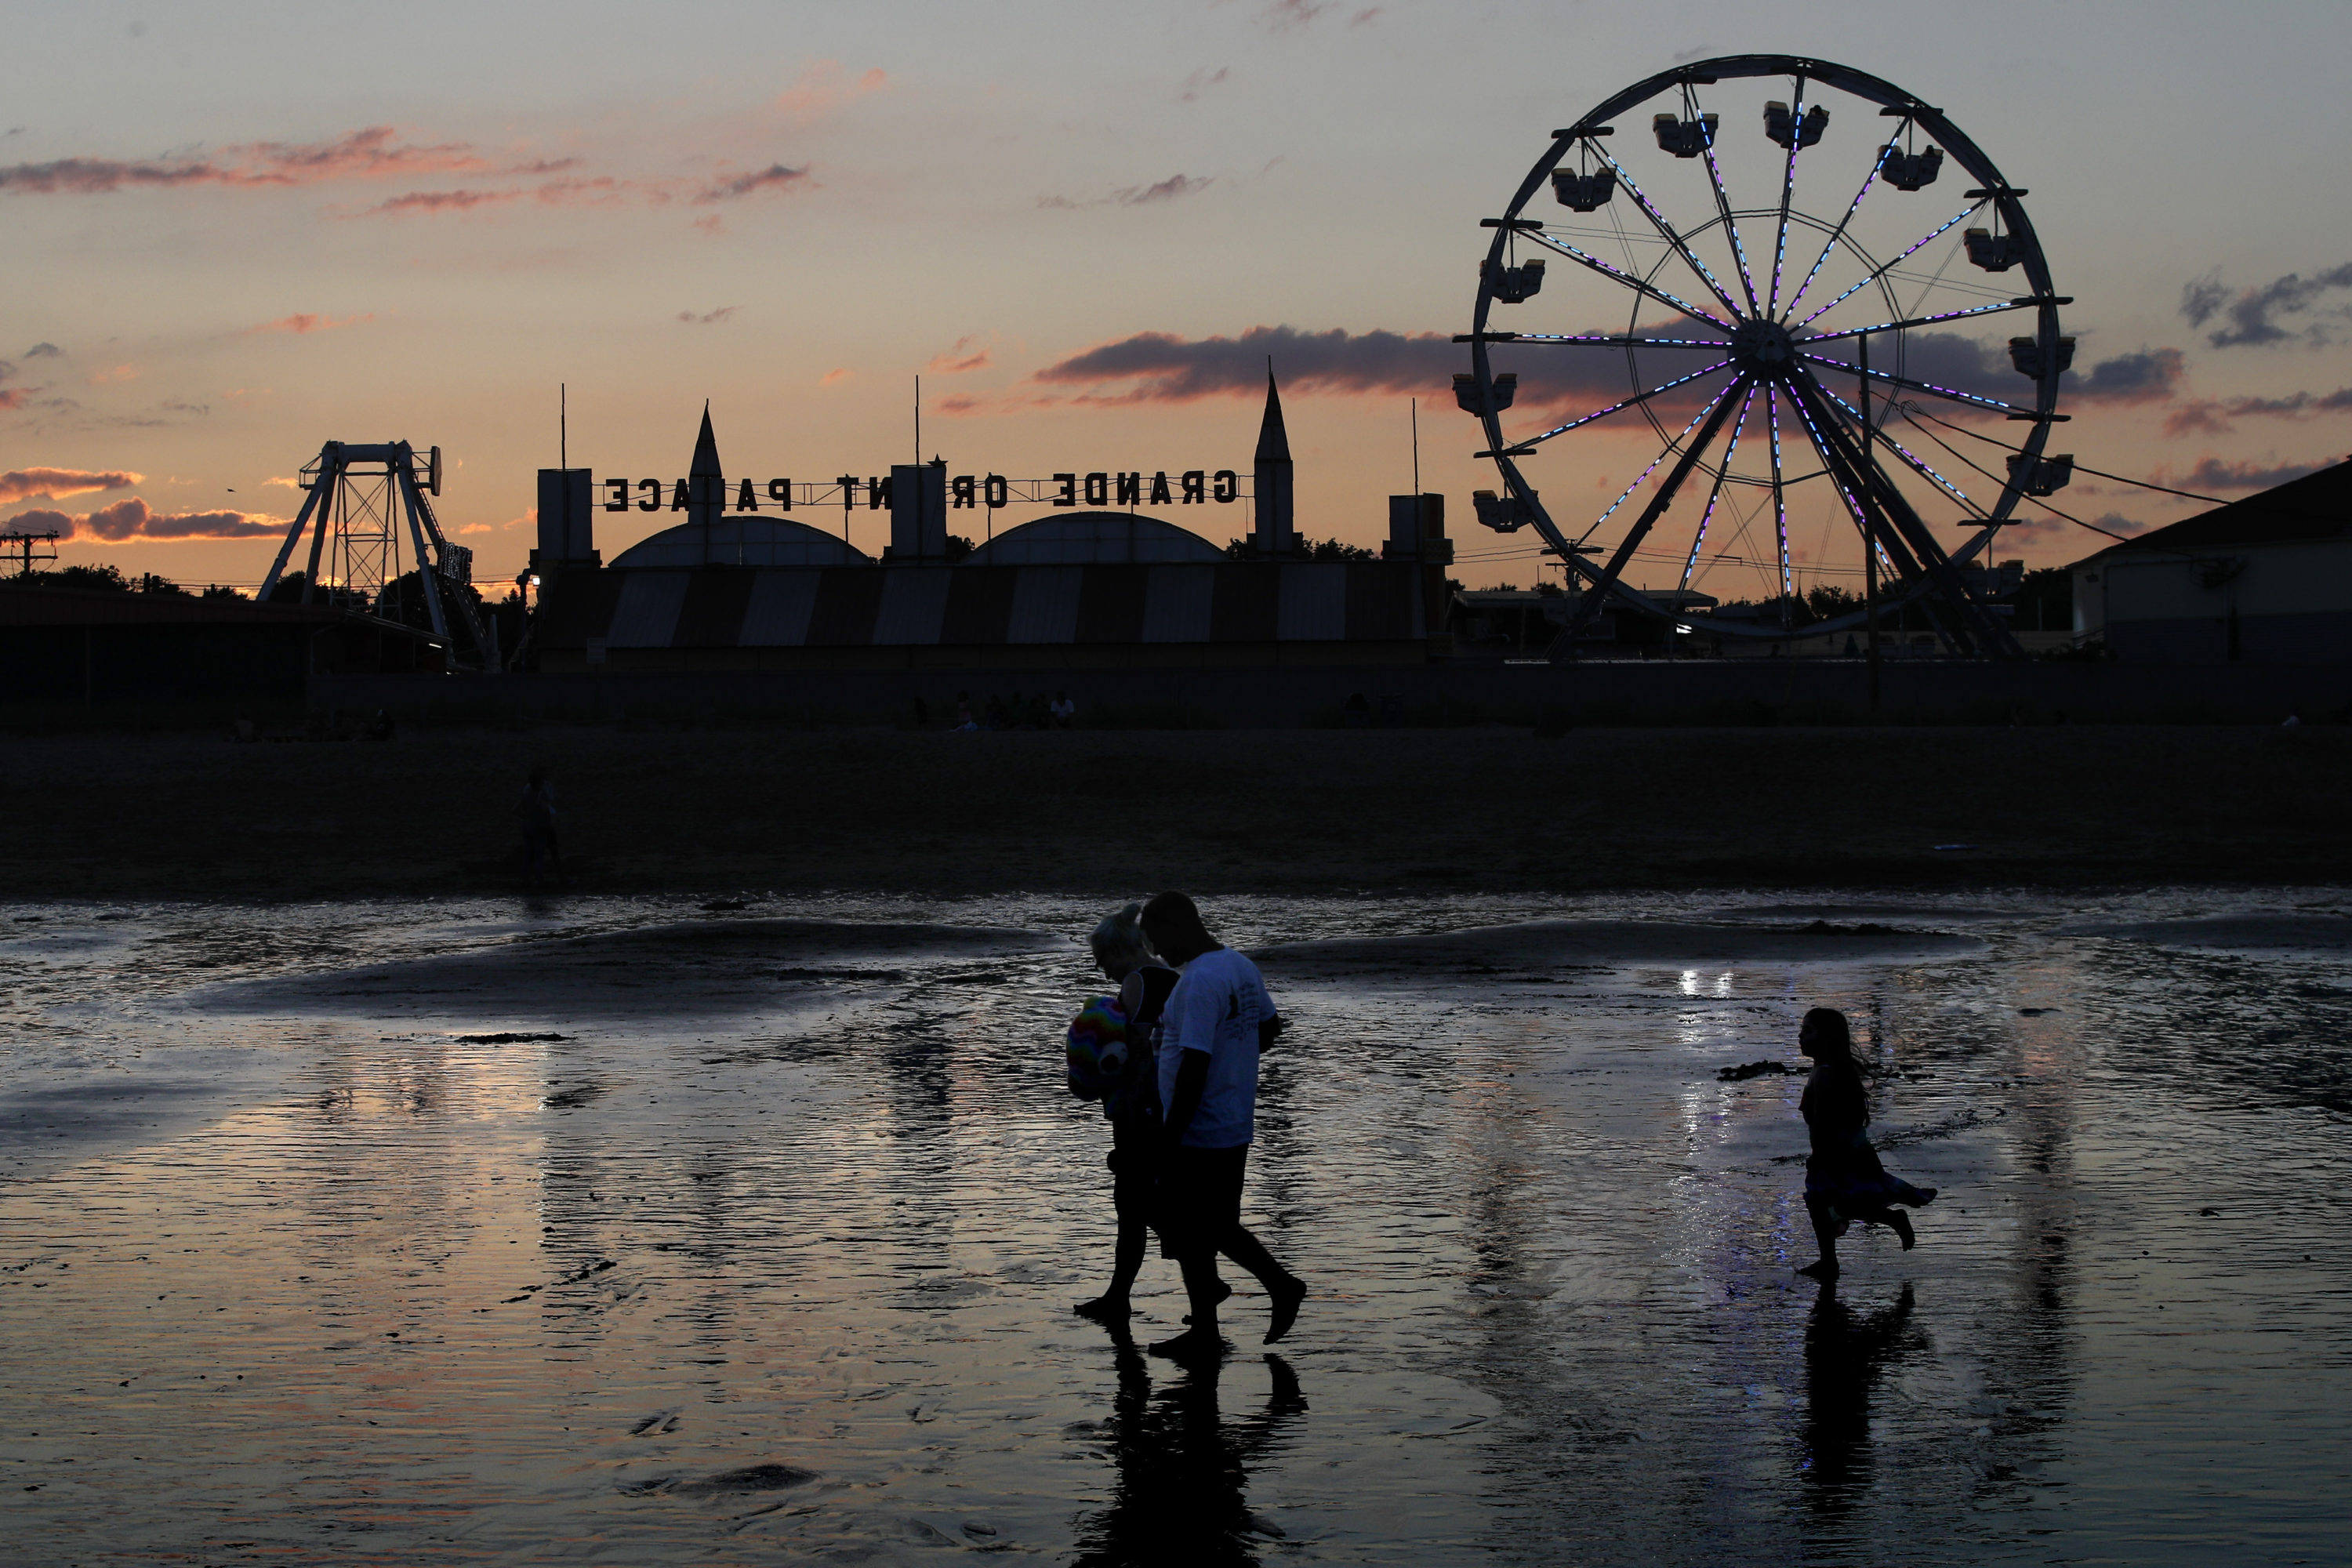 Visitors walk near the Palace Playland amusement park on Aug. 5 at Old Orchard Beach, Maine. (Robert F. Bukaty/AP)